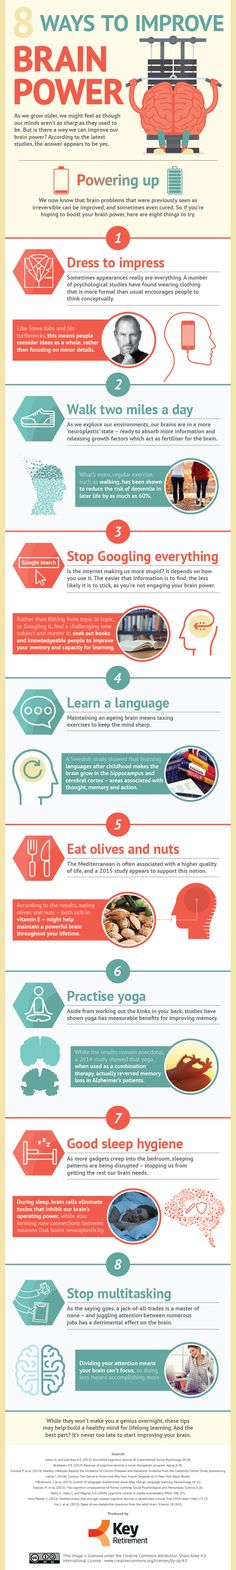 Infographic: Eight Ways To Improve Brain Power - DesignTAXI.com